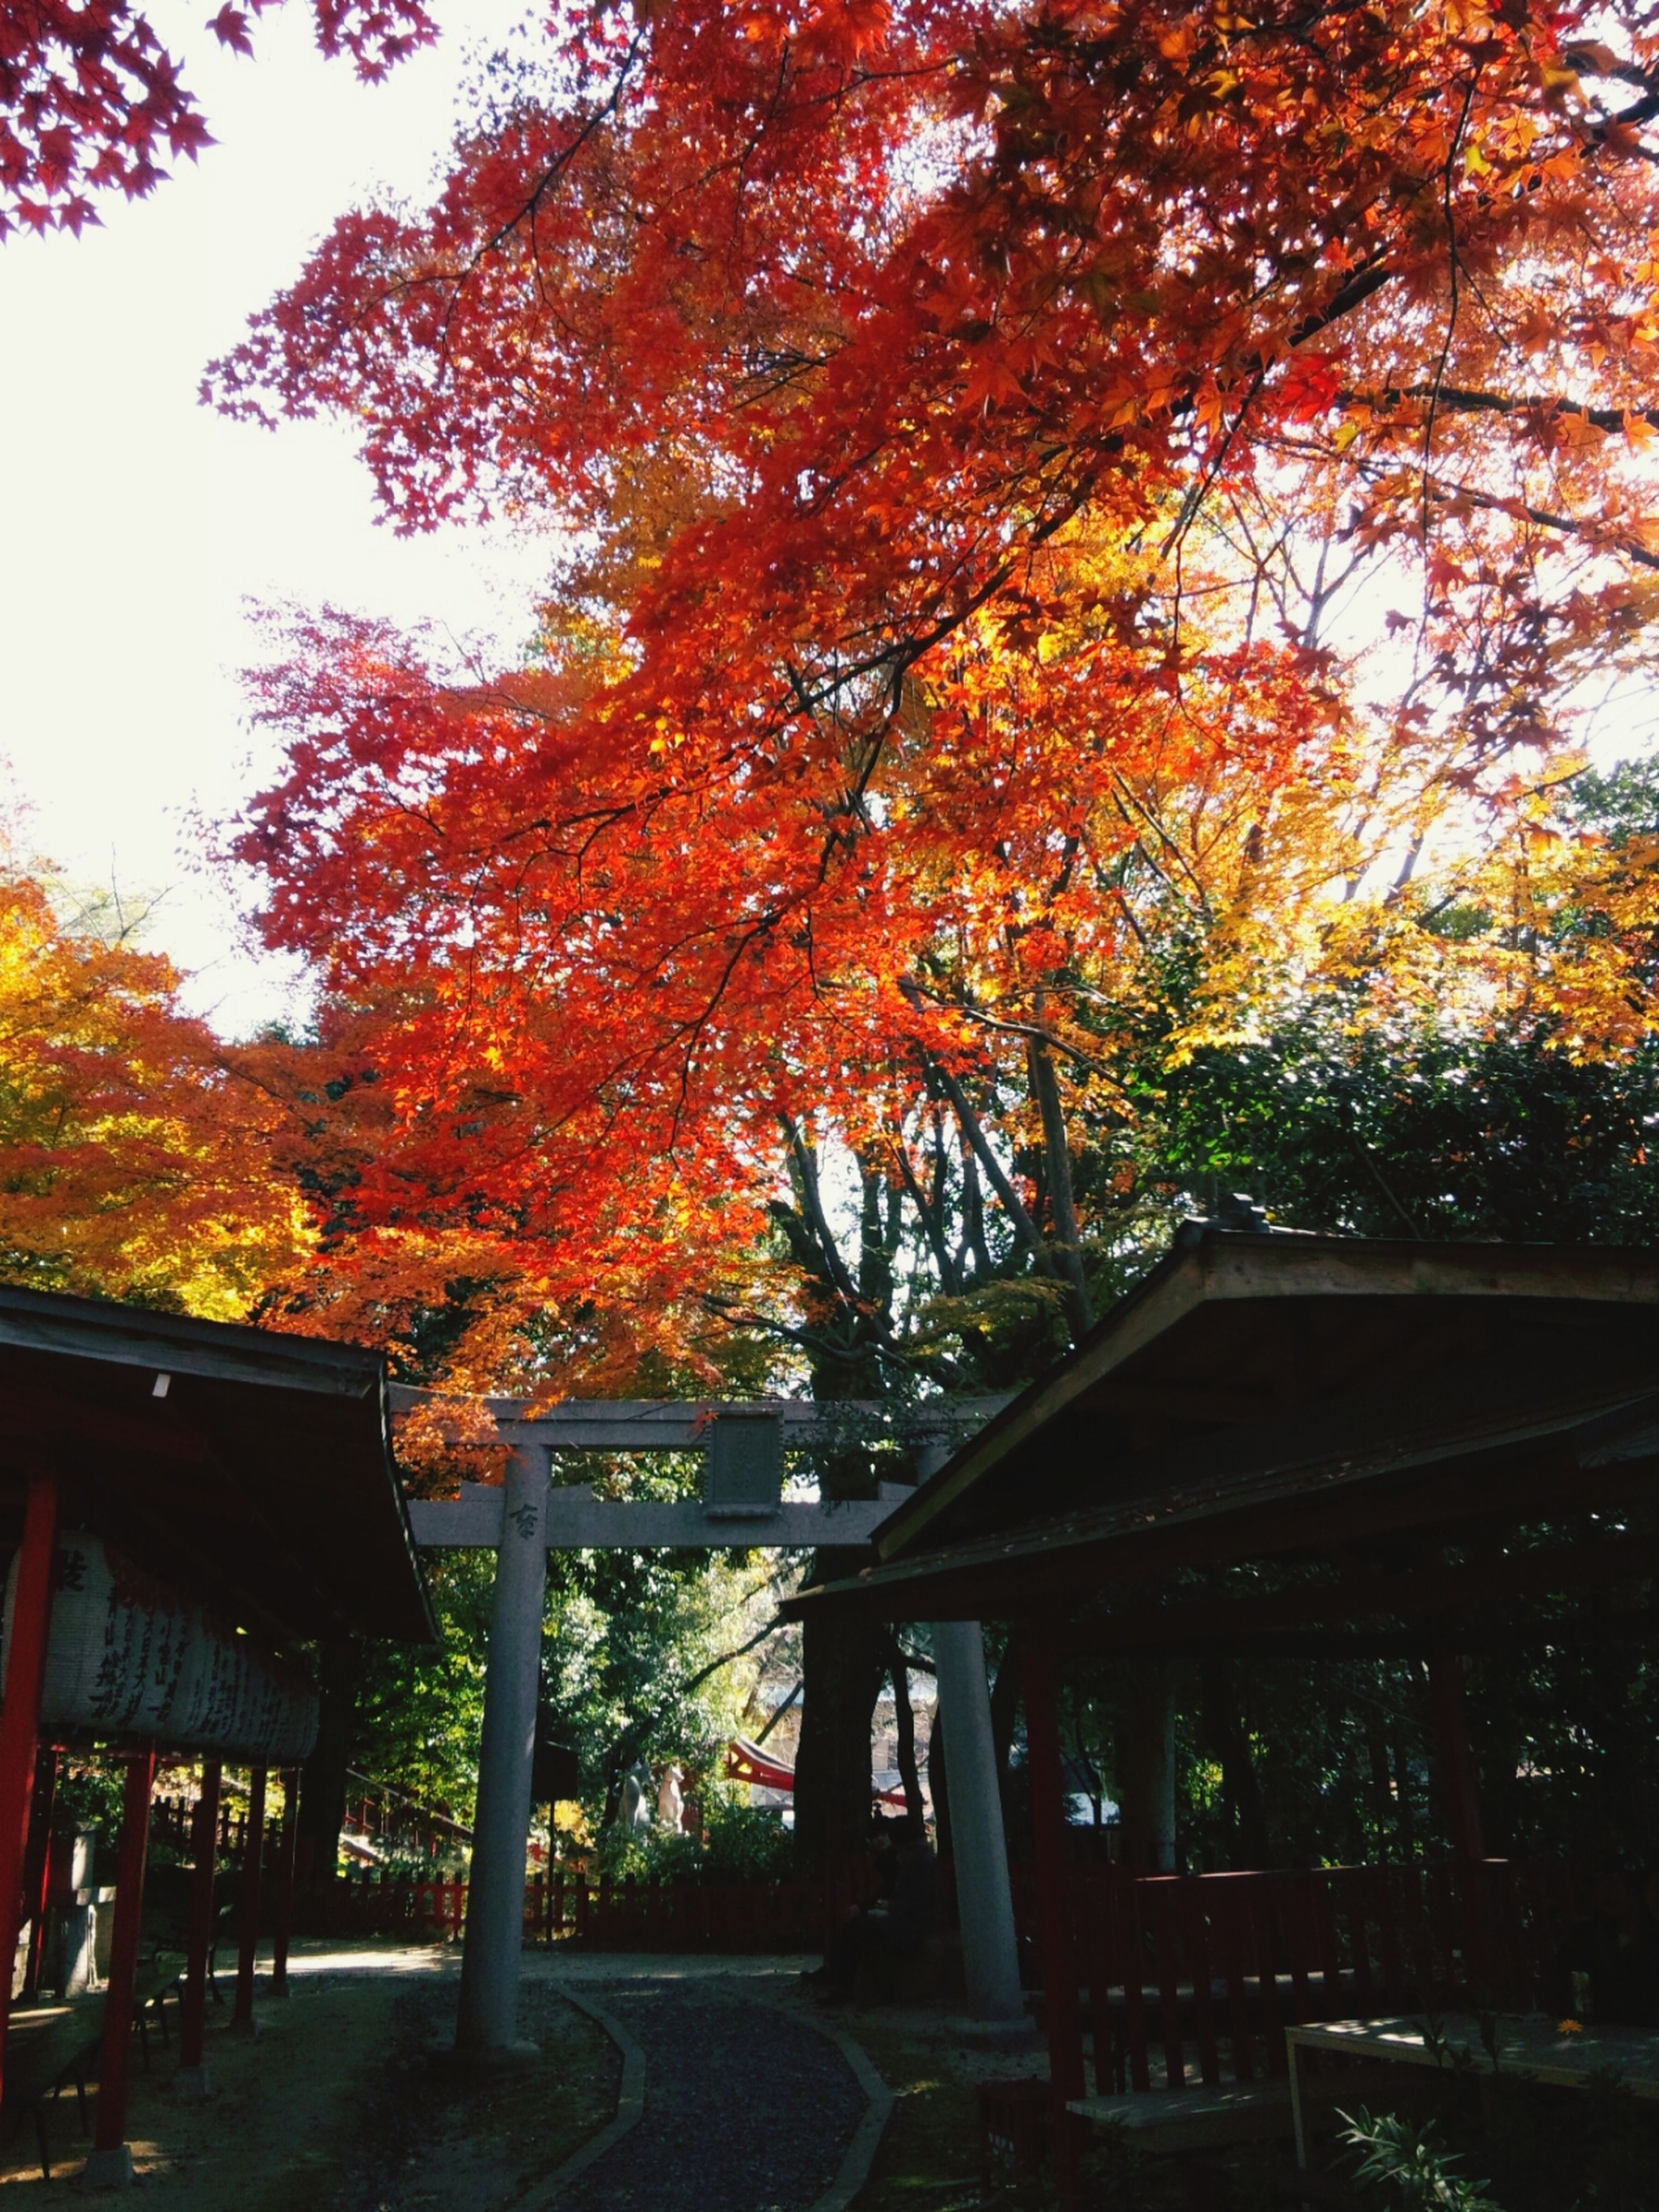 tree, autumn, change, orange color, season, bench, branch, built structure, nature, growth, park - man made space, tranquility, outdoors, wood - material, architecture, building exterior, beauty in nature, no people, leaf, railing